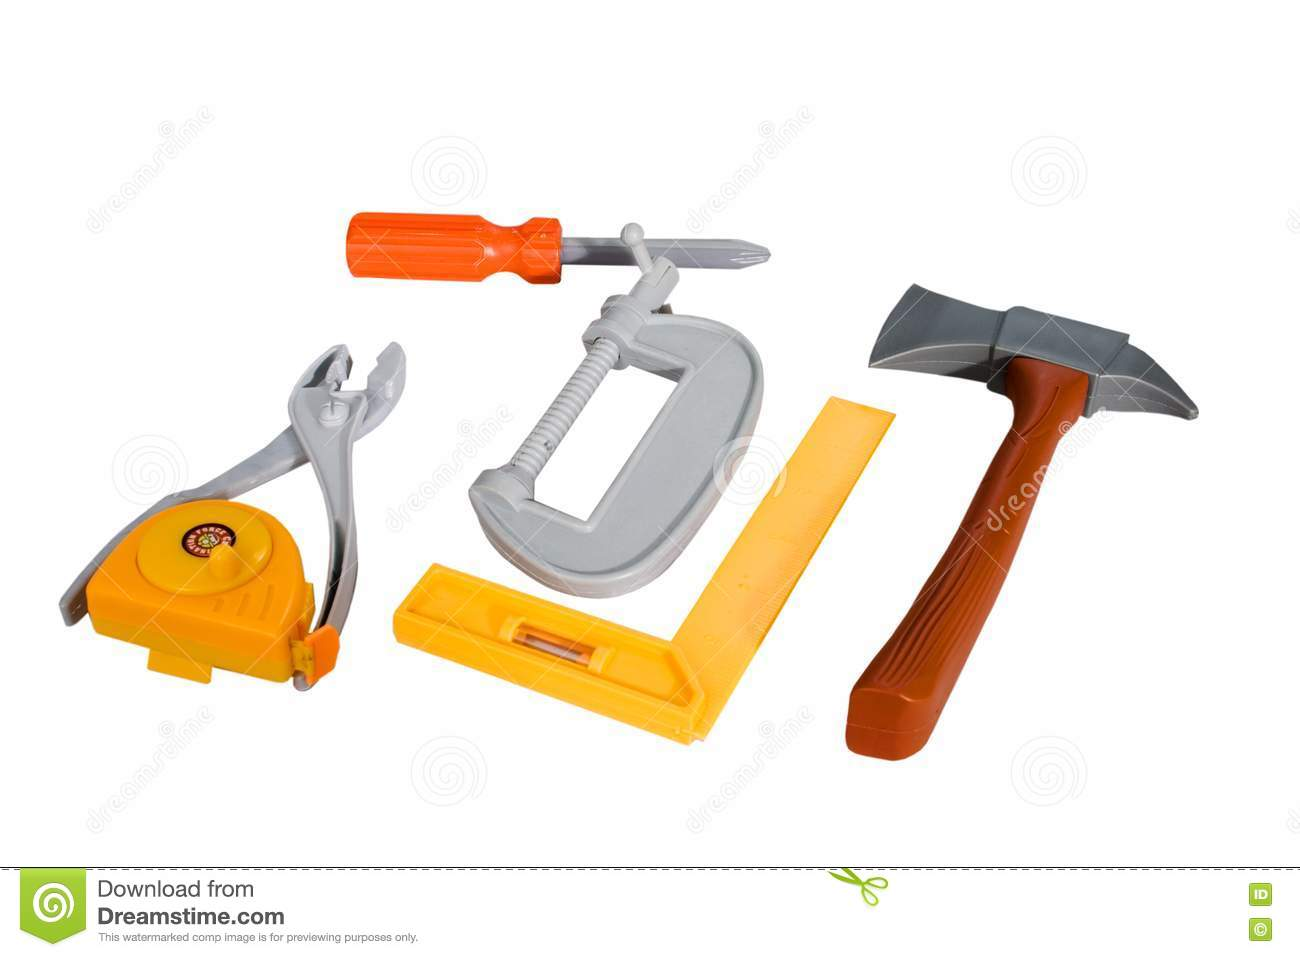 Plastic Toy Tools : Toy tool plastic royalty free stock photo image